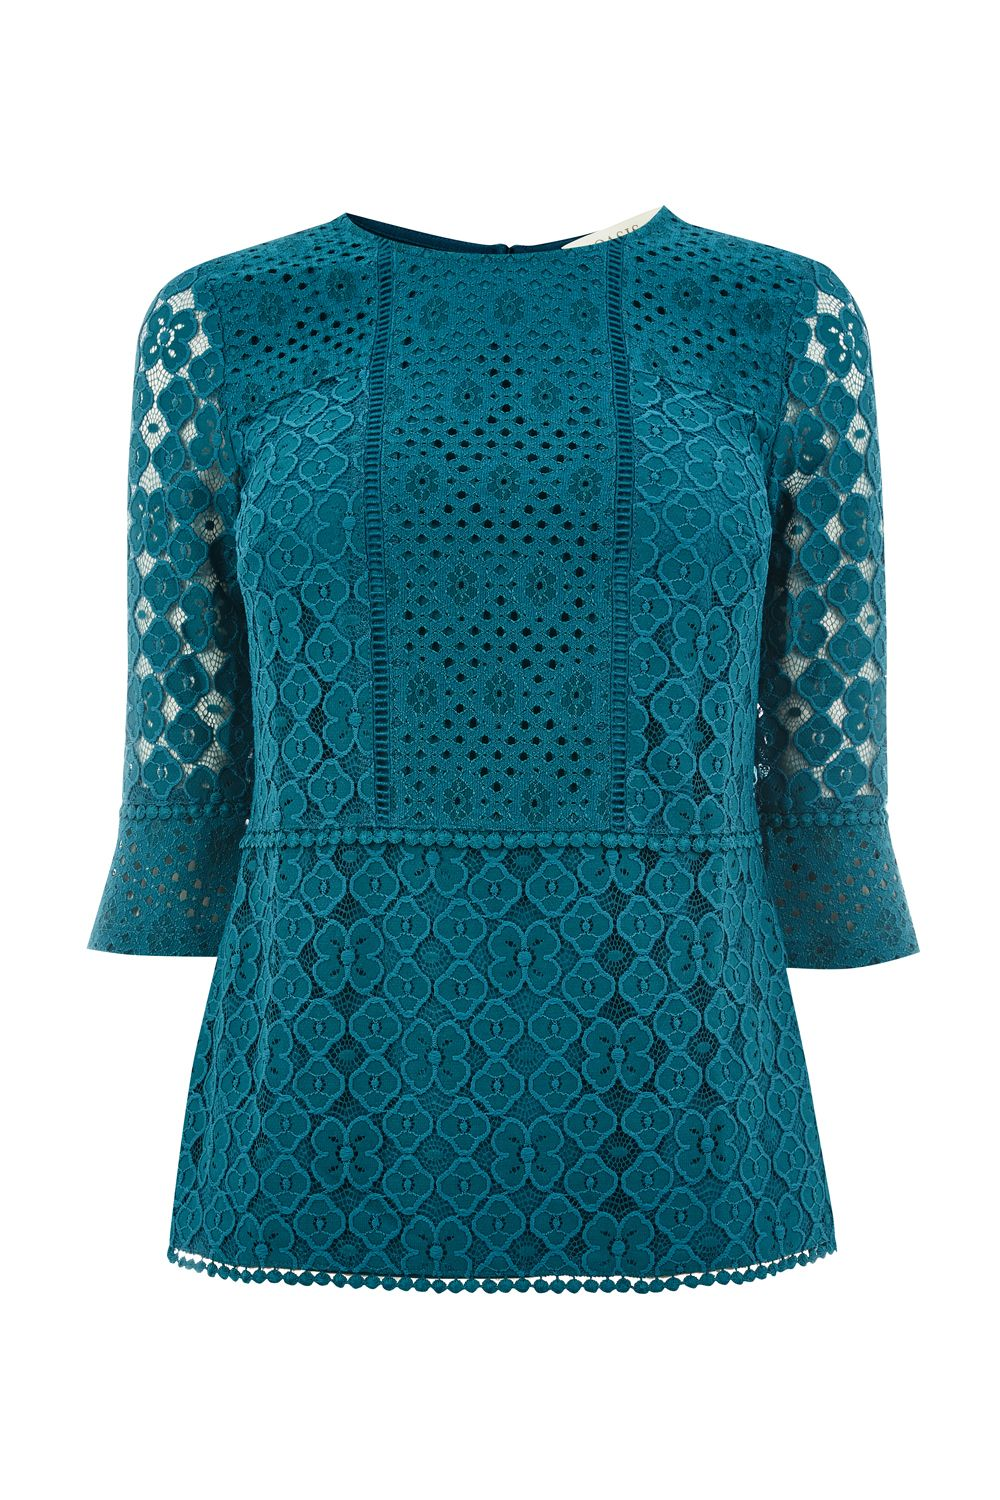 Oasis Kick Sleeve Lace Top, Turquoise